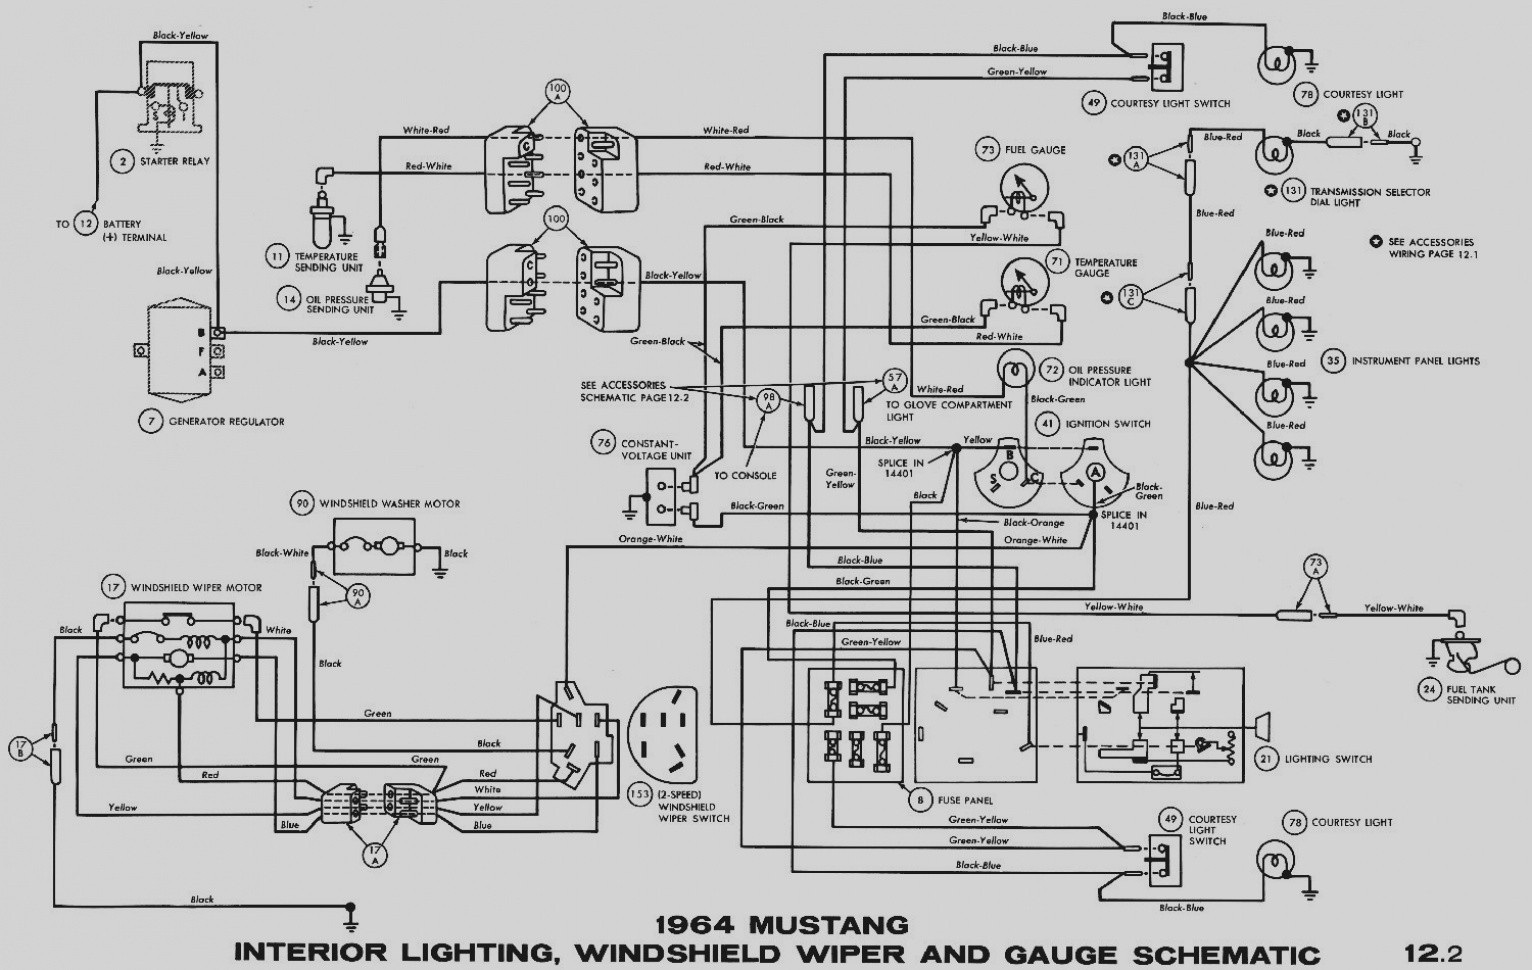 hight resolution of 1965 mustang wiring schematic free wiring diagram loc mustang wiring diagram 69 1965 mustang wiring schematic